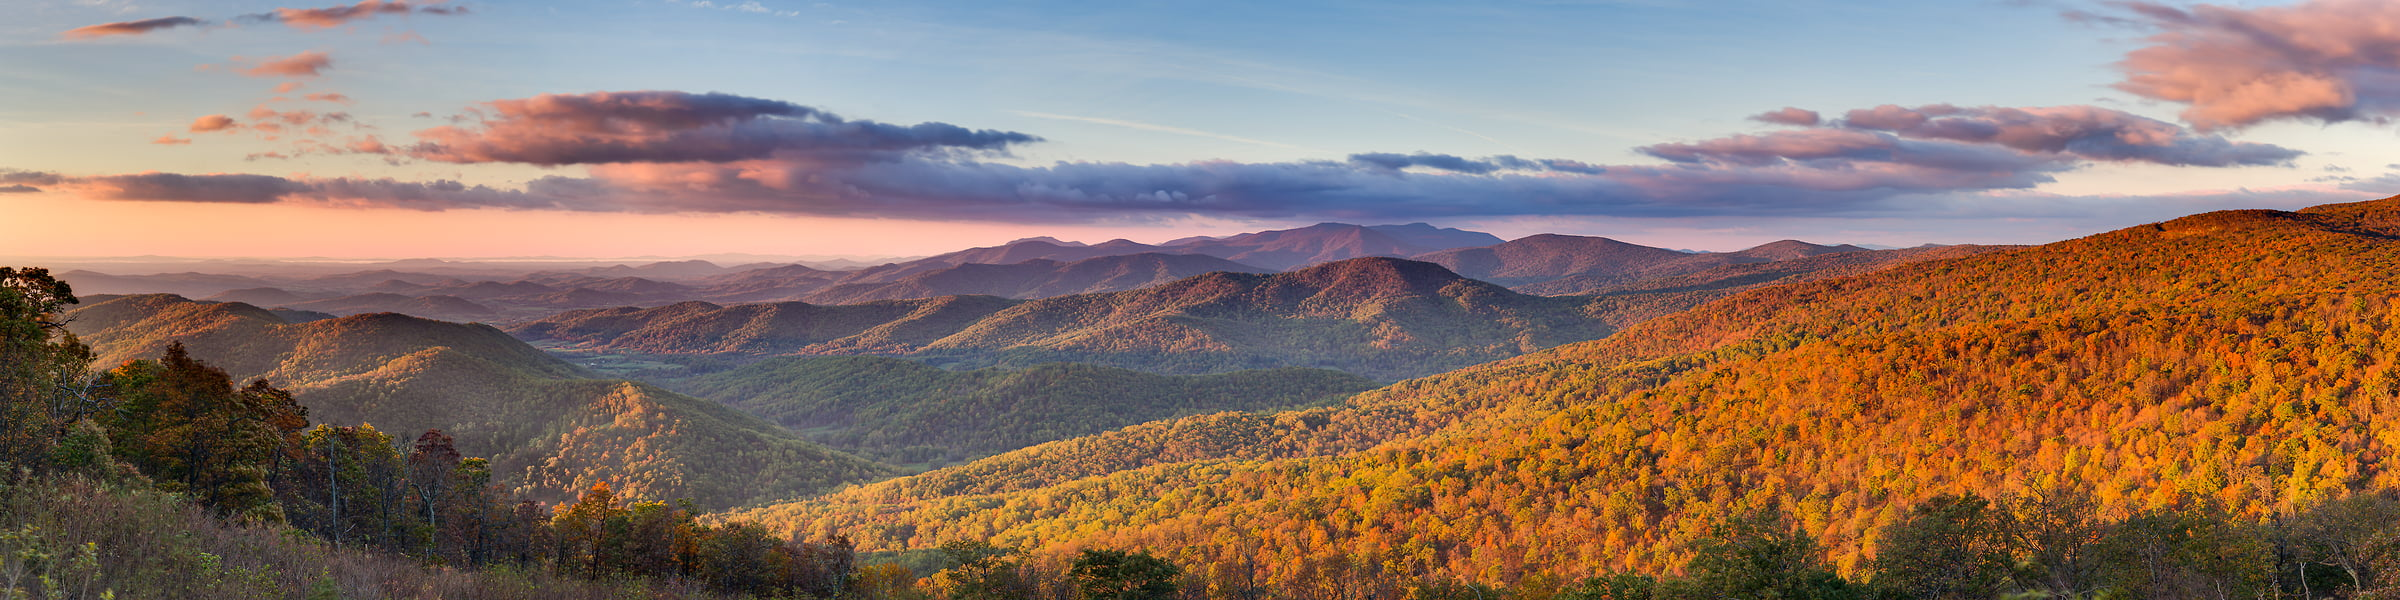 128 megapixels! A very high resolution, large-format VAST photo of fall foliage in the Appalachian mountains at sunrise on Skyline Drive in Shenandoah National Park; landscape panorama photograph created by Tim Lo Monaco in Rappahannock County, Virginia